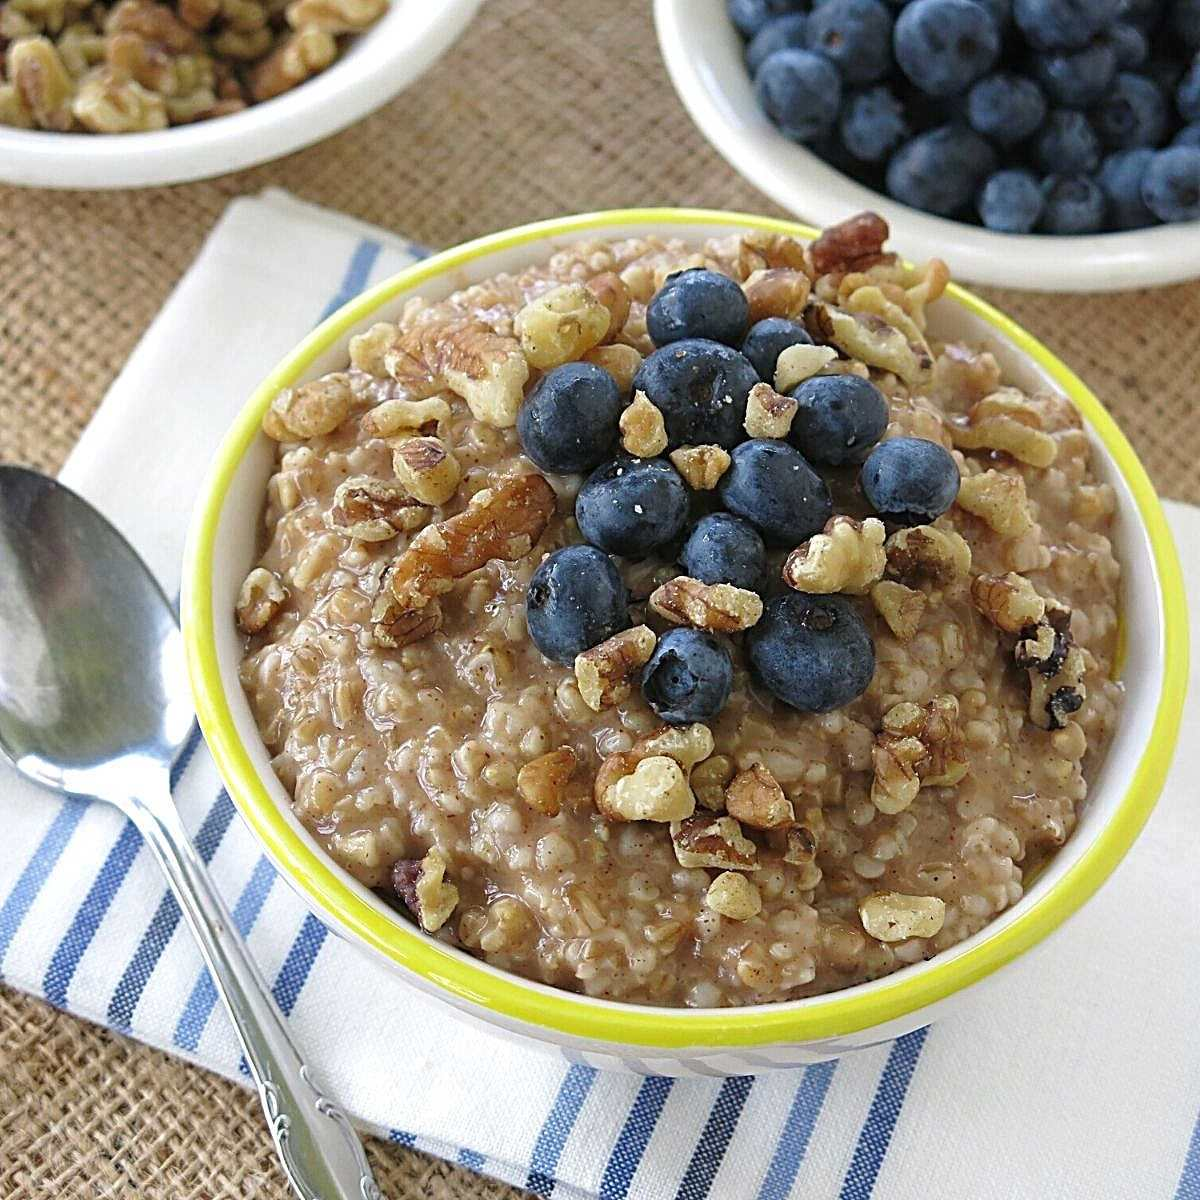 Bowl of slow cooker steel cut oatmeal with blueberries and walnuts on top and more blueberries in the background.